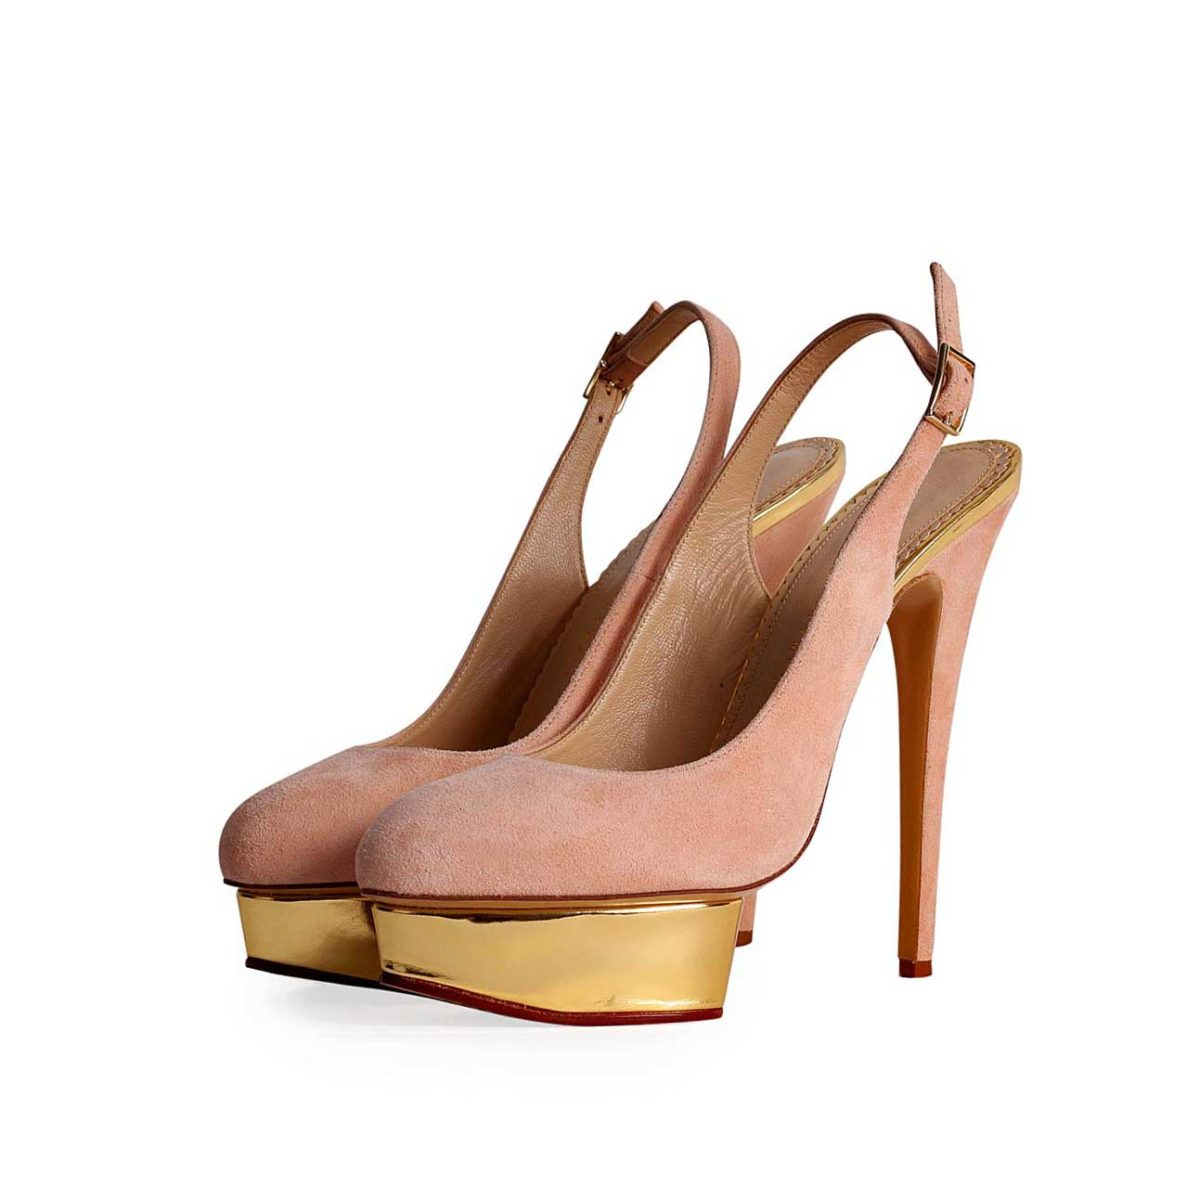 3ce2024fb8 CHARLOTTE OLYMPIA Suede Dolly Slingback Pumps Nude - S  41 (7.5 ...